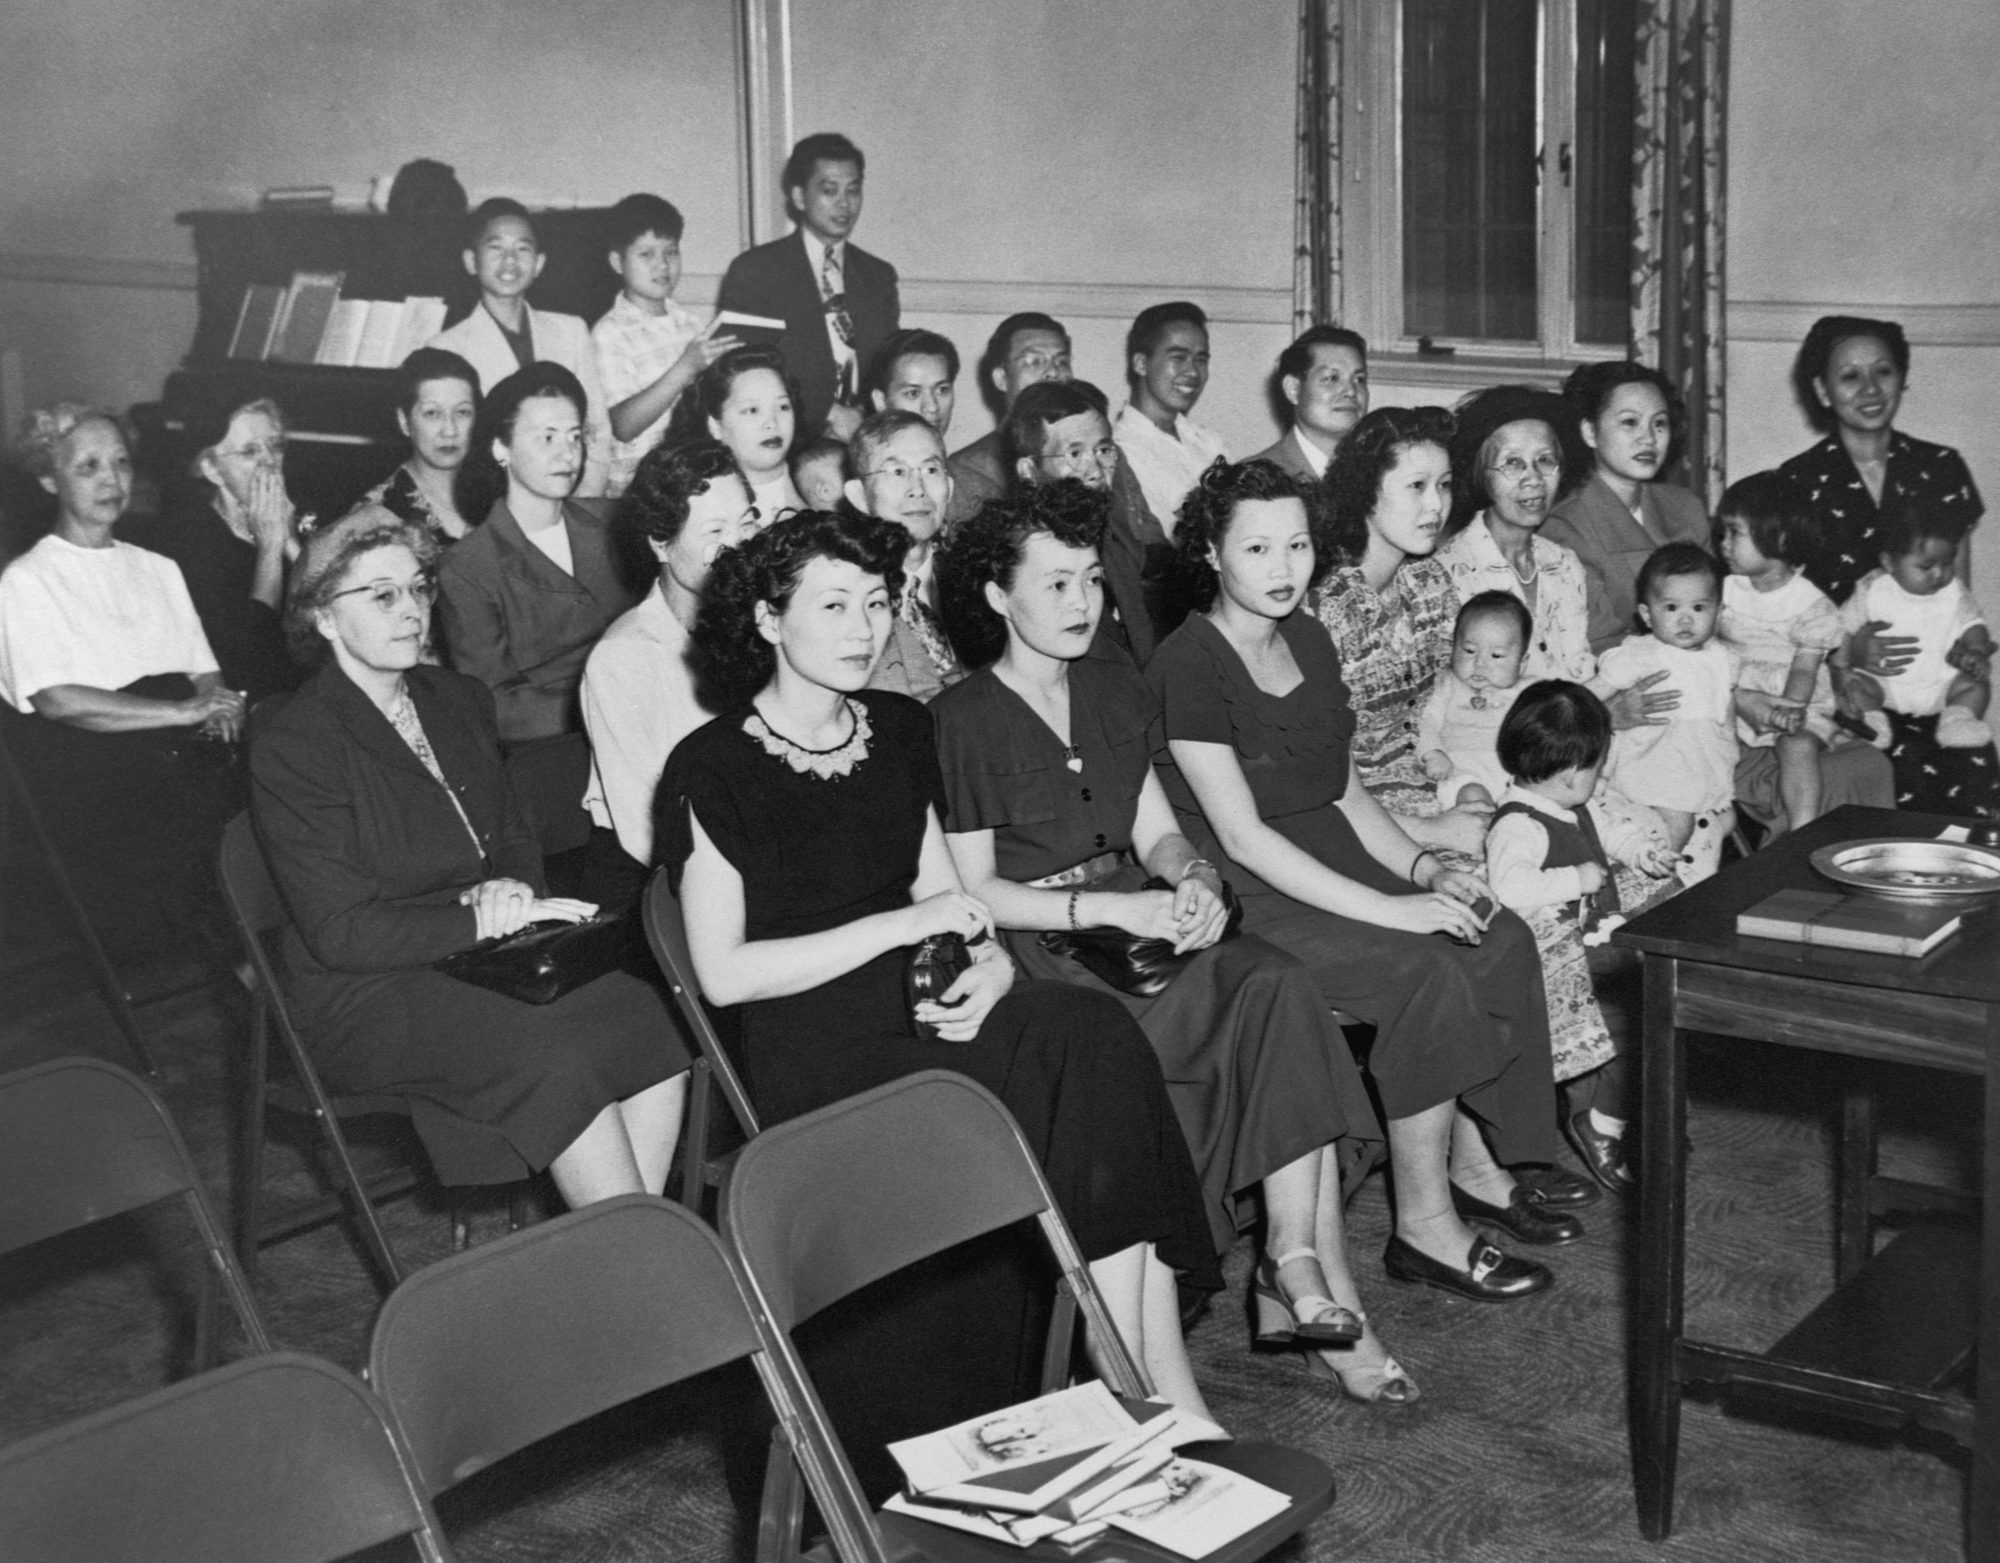 The wives of Chinese-American servicemen, who came to America as war brides after World War II, attend a Chinese-language Sunday school class at Westminster Presbyterian Church in Minneapolis in 1950.